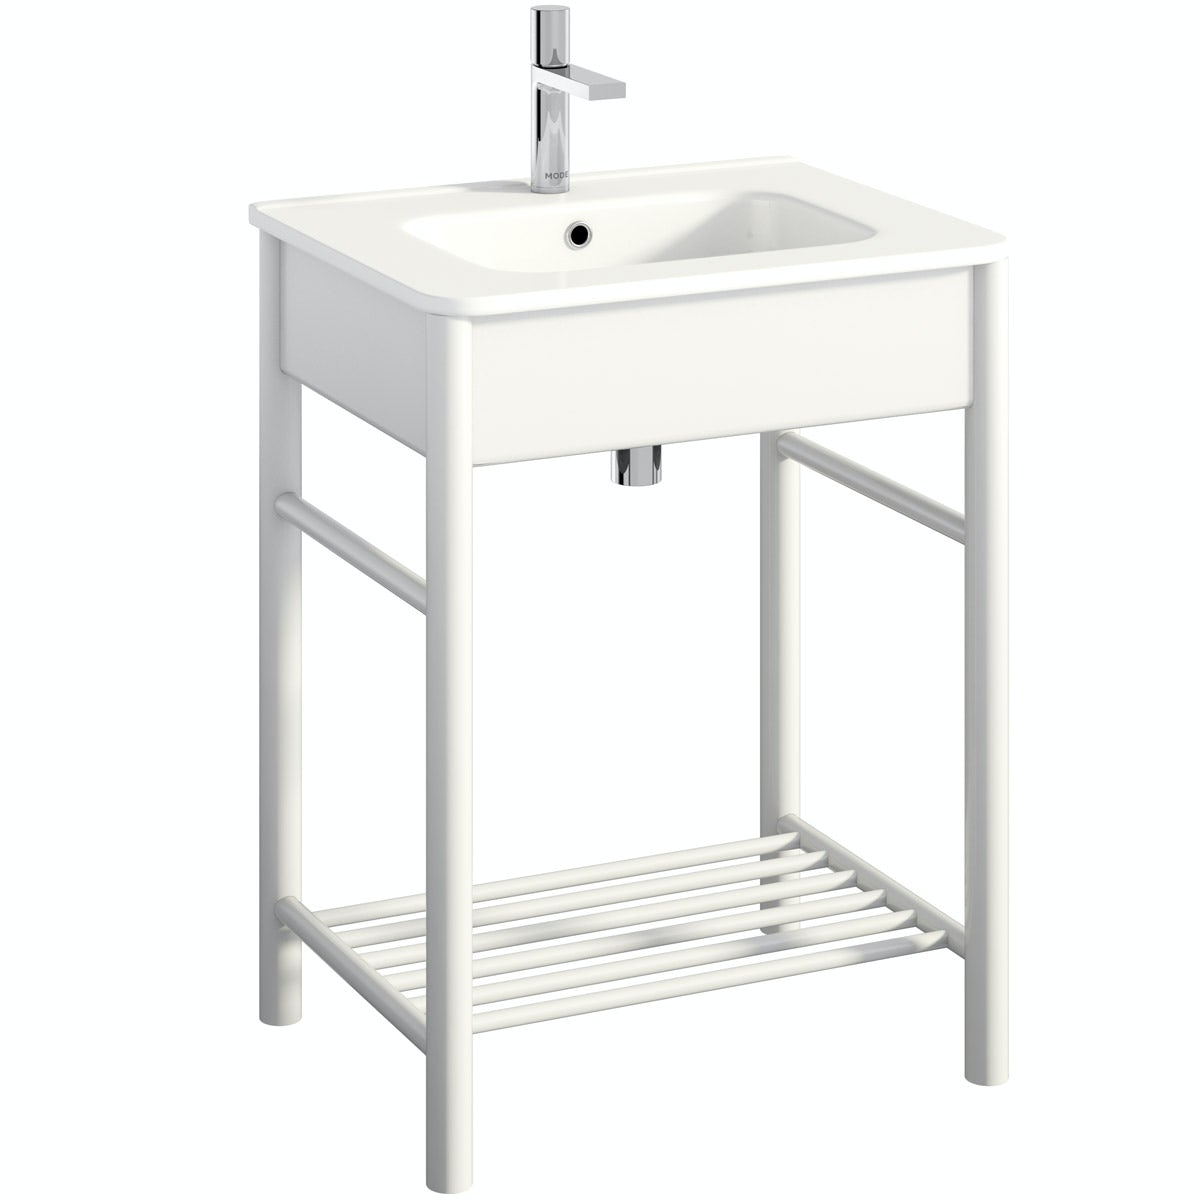 Mode South Bank white washstand with basin 600mm